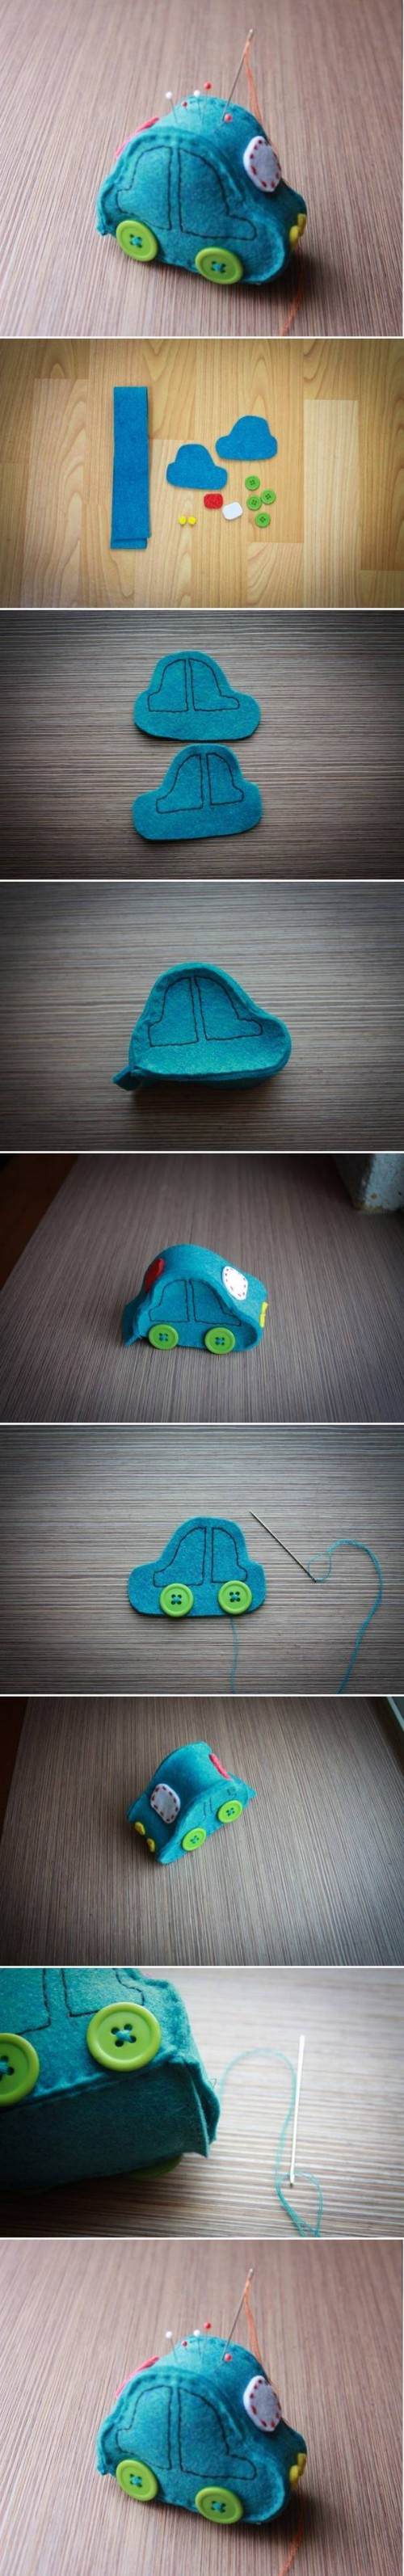 How To Make Cute Car Pincushion step by step DIY tutorial instructions